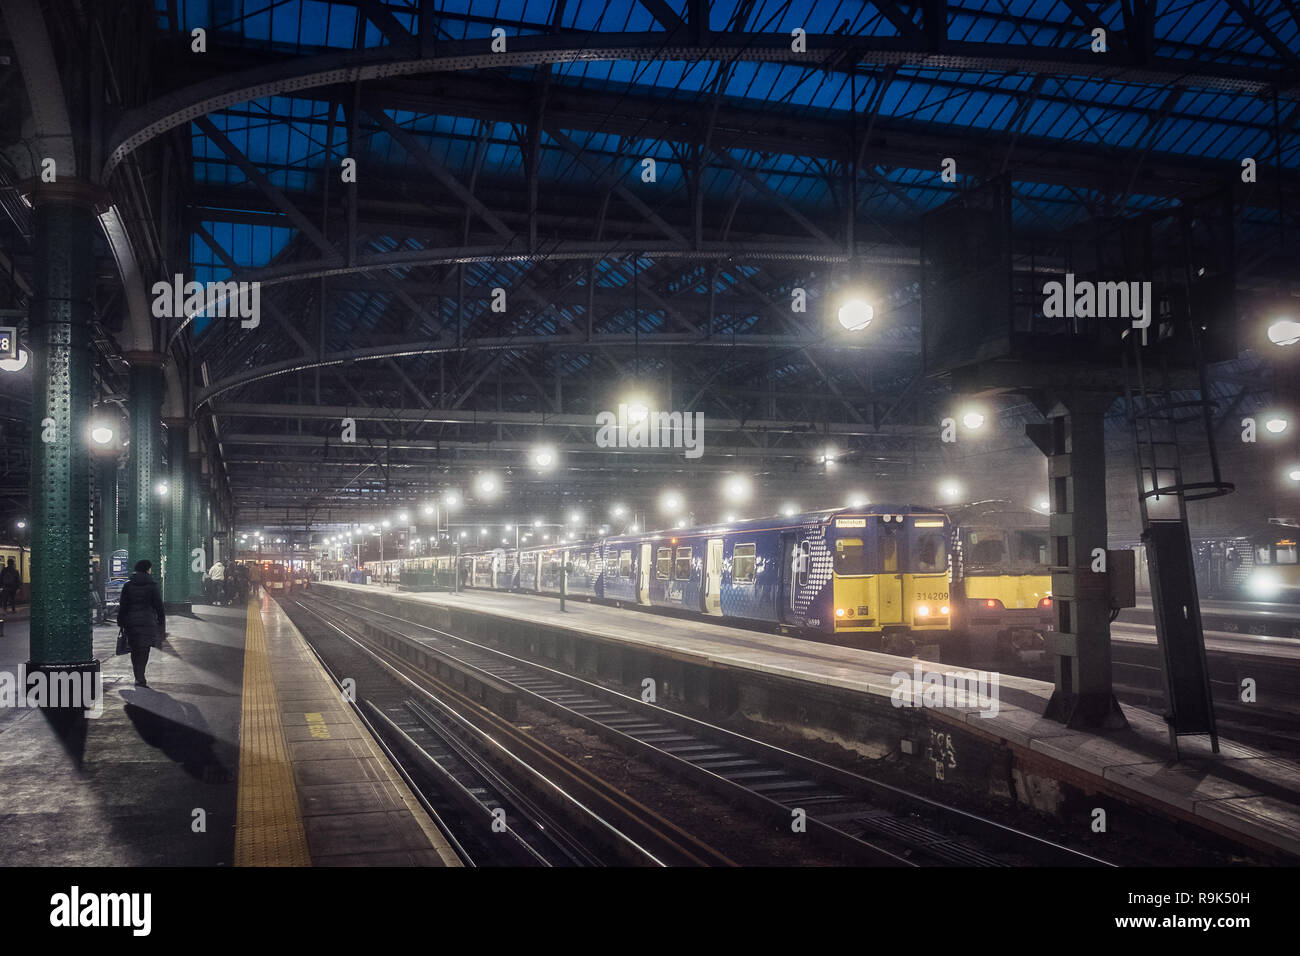 Glasgow central railway station. Train and rails in the station. Cold weather. Historic railway station and perspective view. Glasgow. United Kingdom. - Stock Image